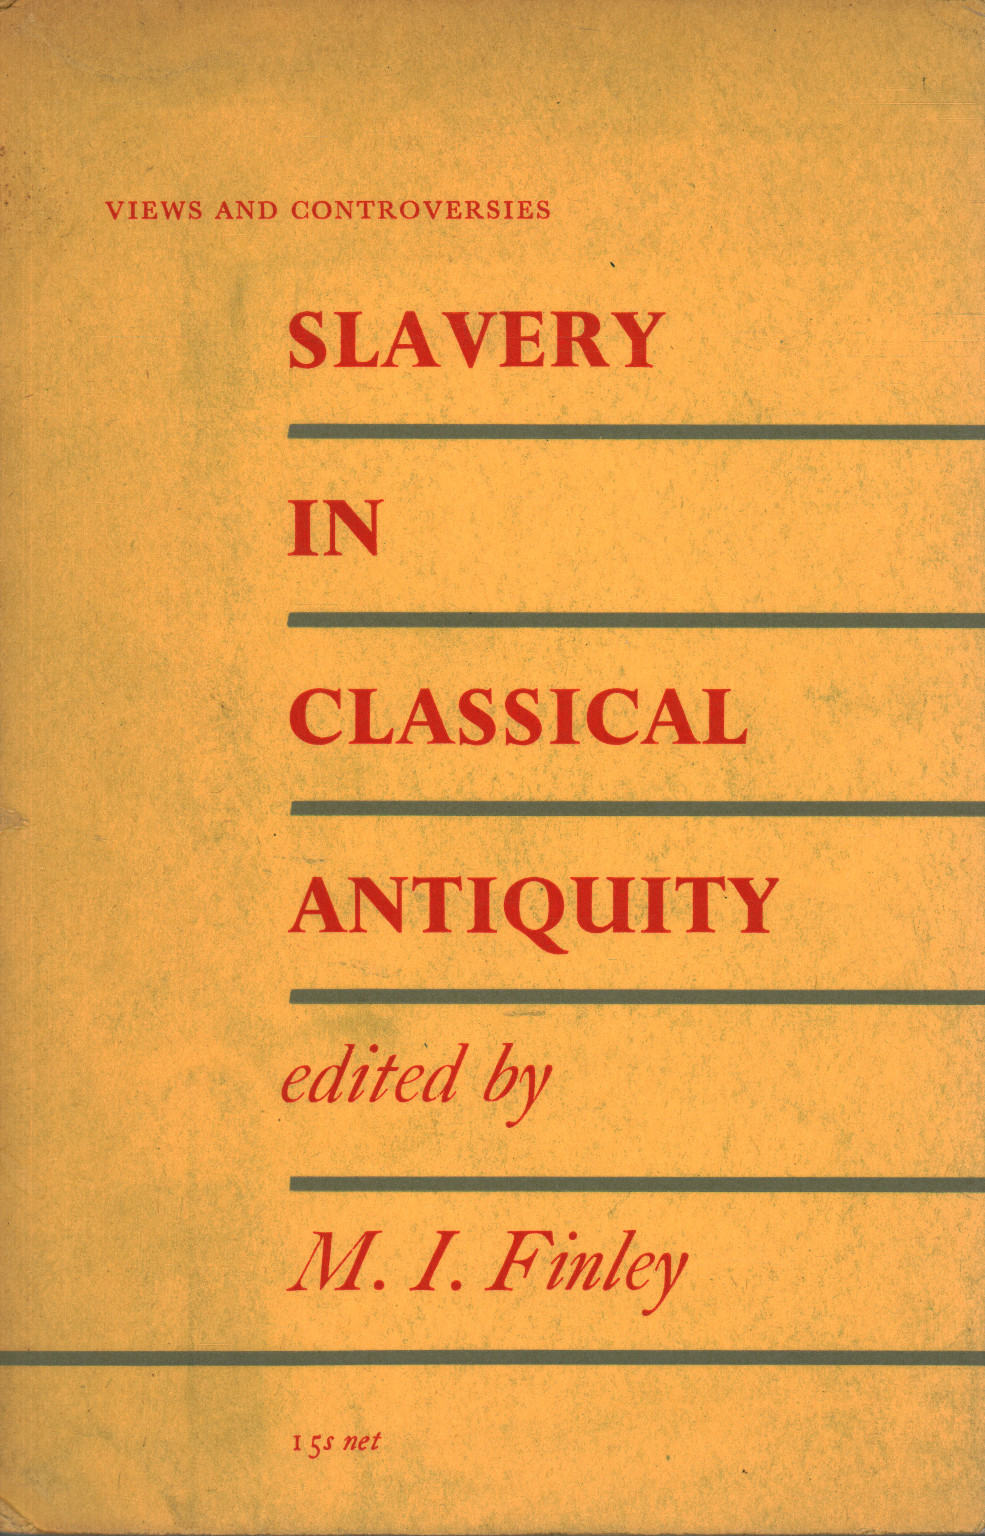 Slavery in Classical Antiquity, M.I. Finley